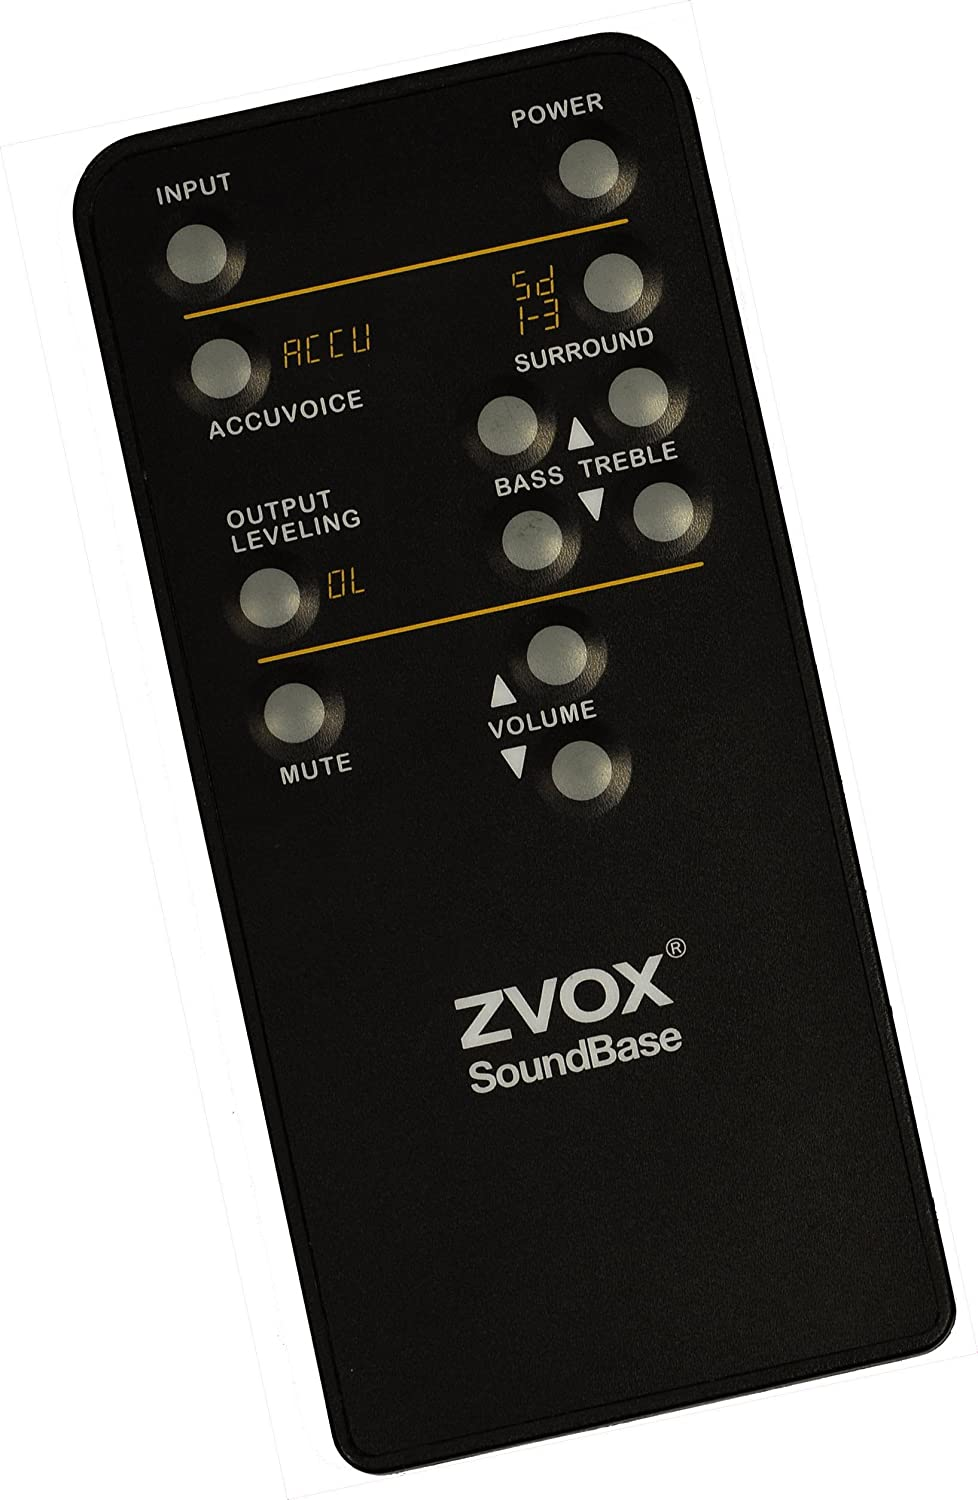 ZVOX SoundBase 570 30 Sound Bar with Built-in Subwoofer AccuVoice Bluetooth